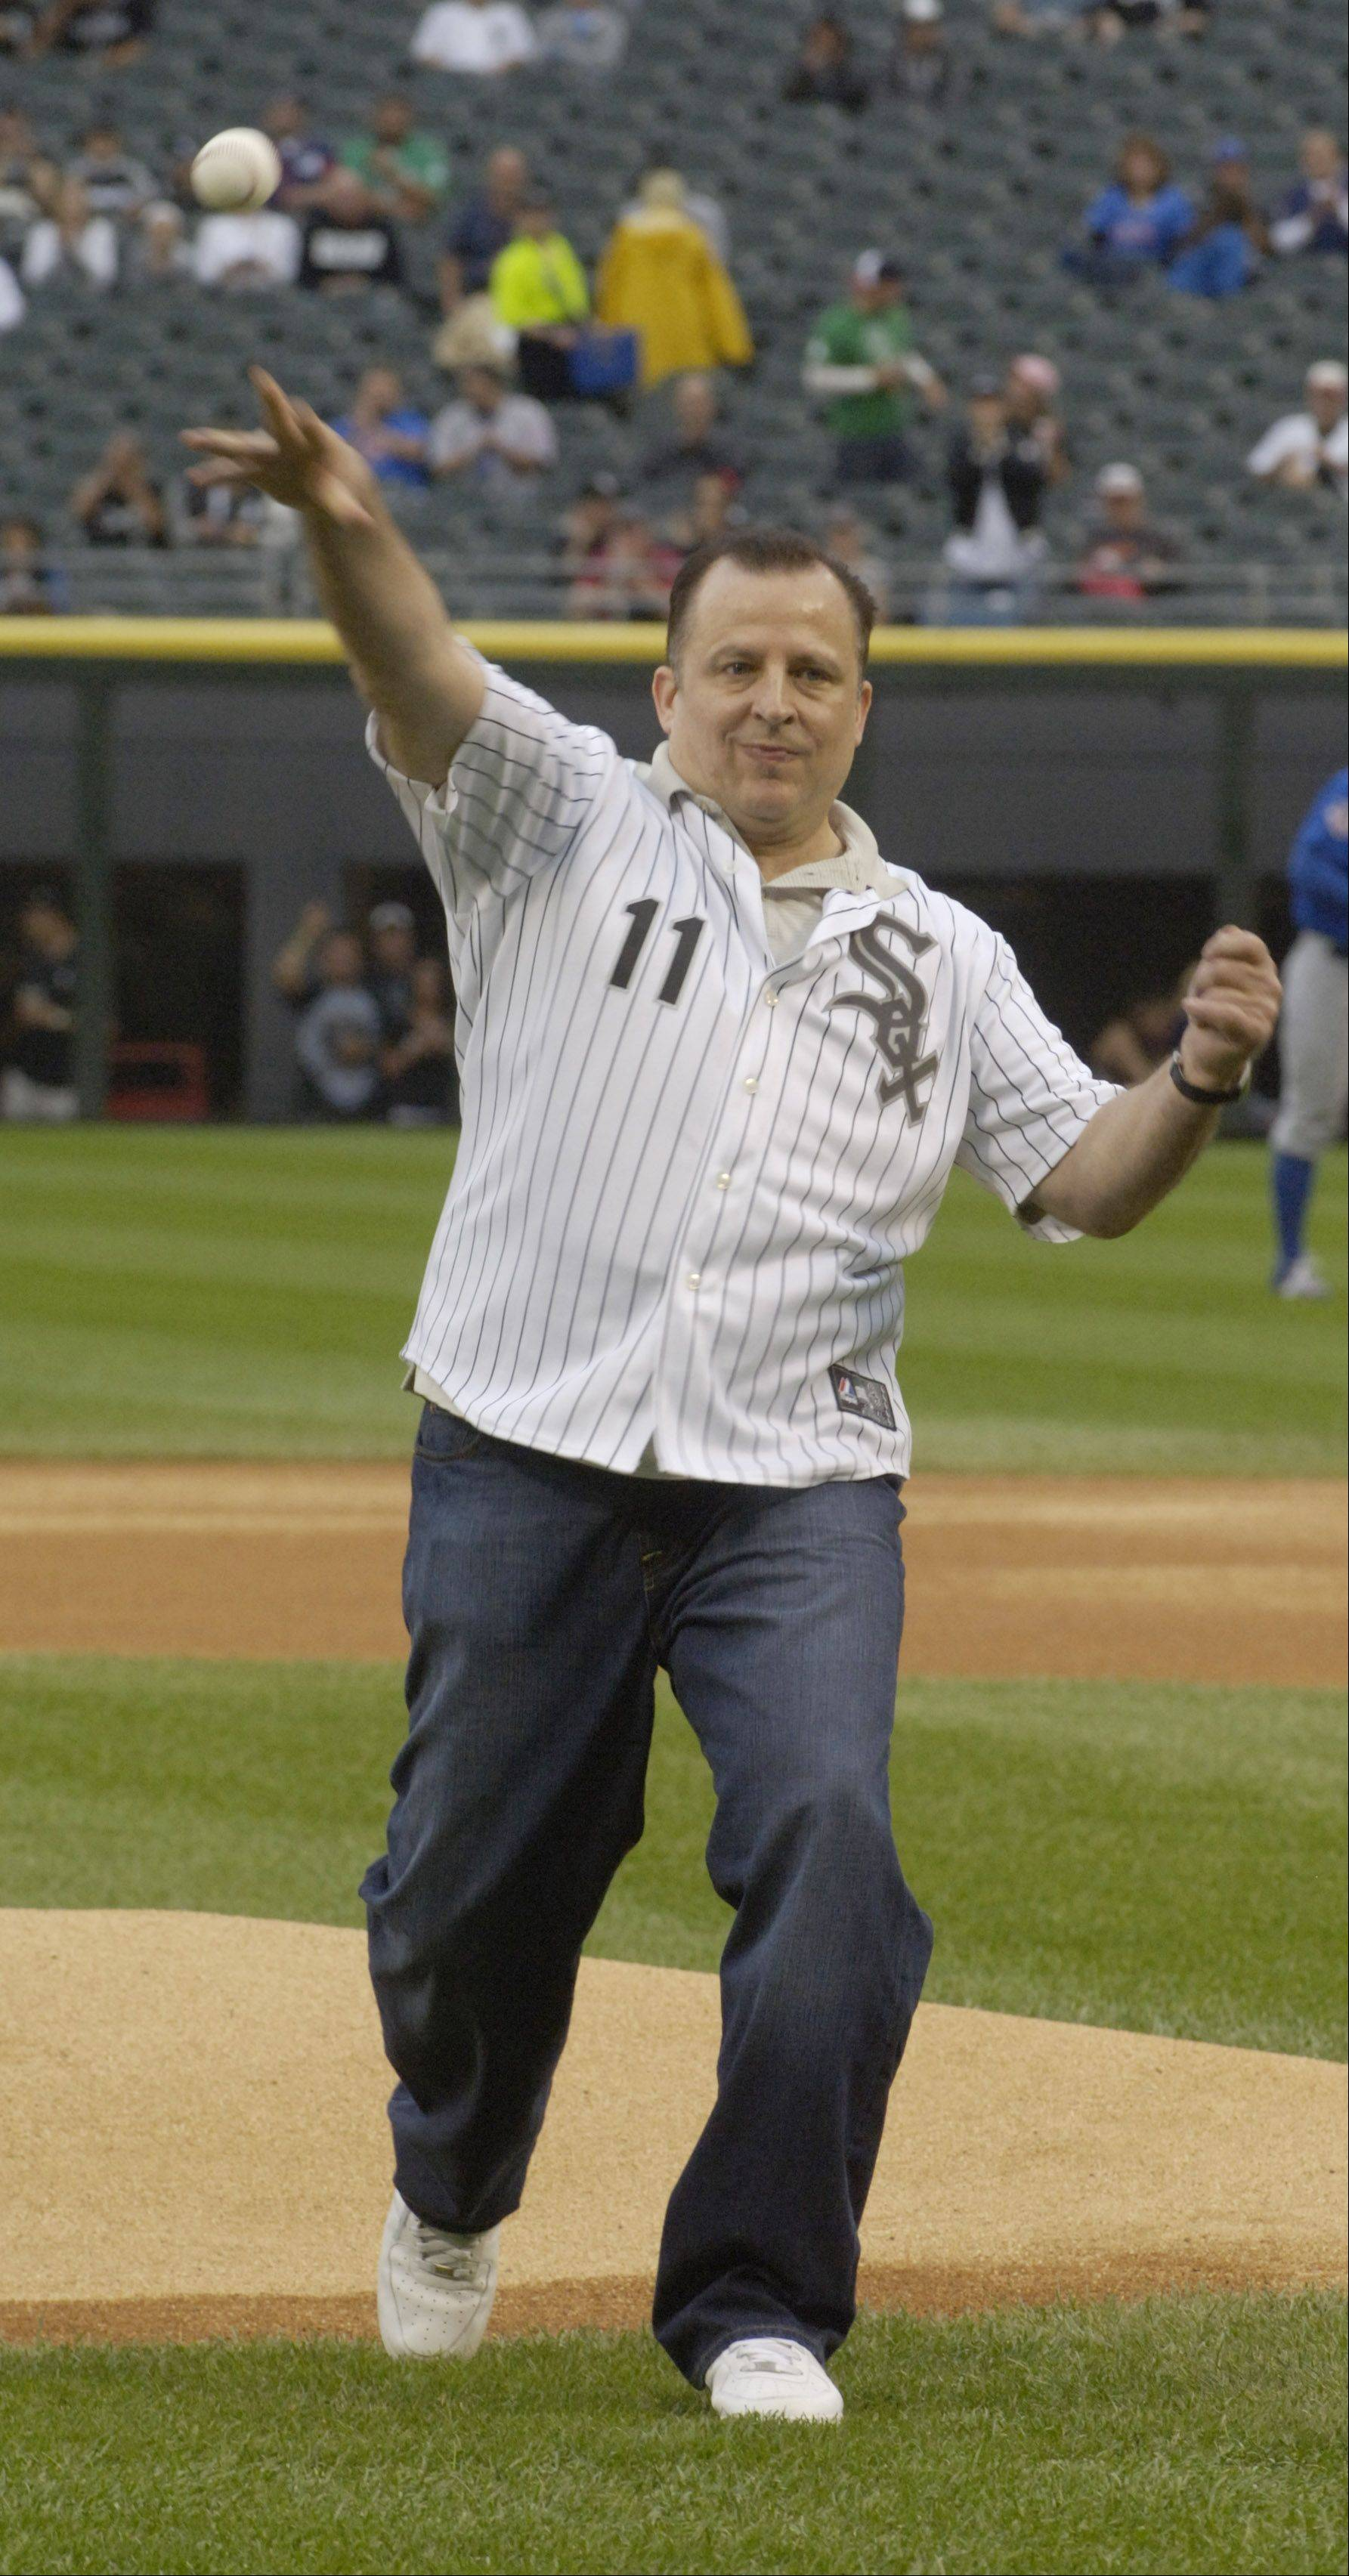 Chicago Bulls coach Tom Thibodeau throws out the ceremonial first pitch prior to Wednesday's game at U.S. Cellular Field.